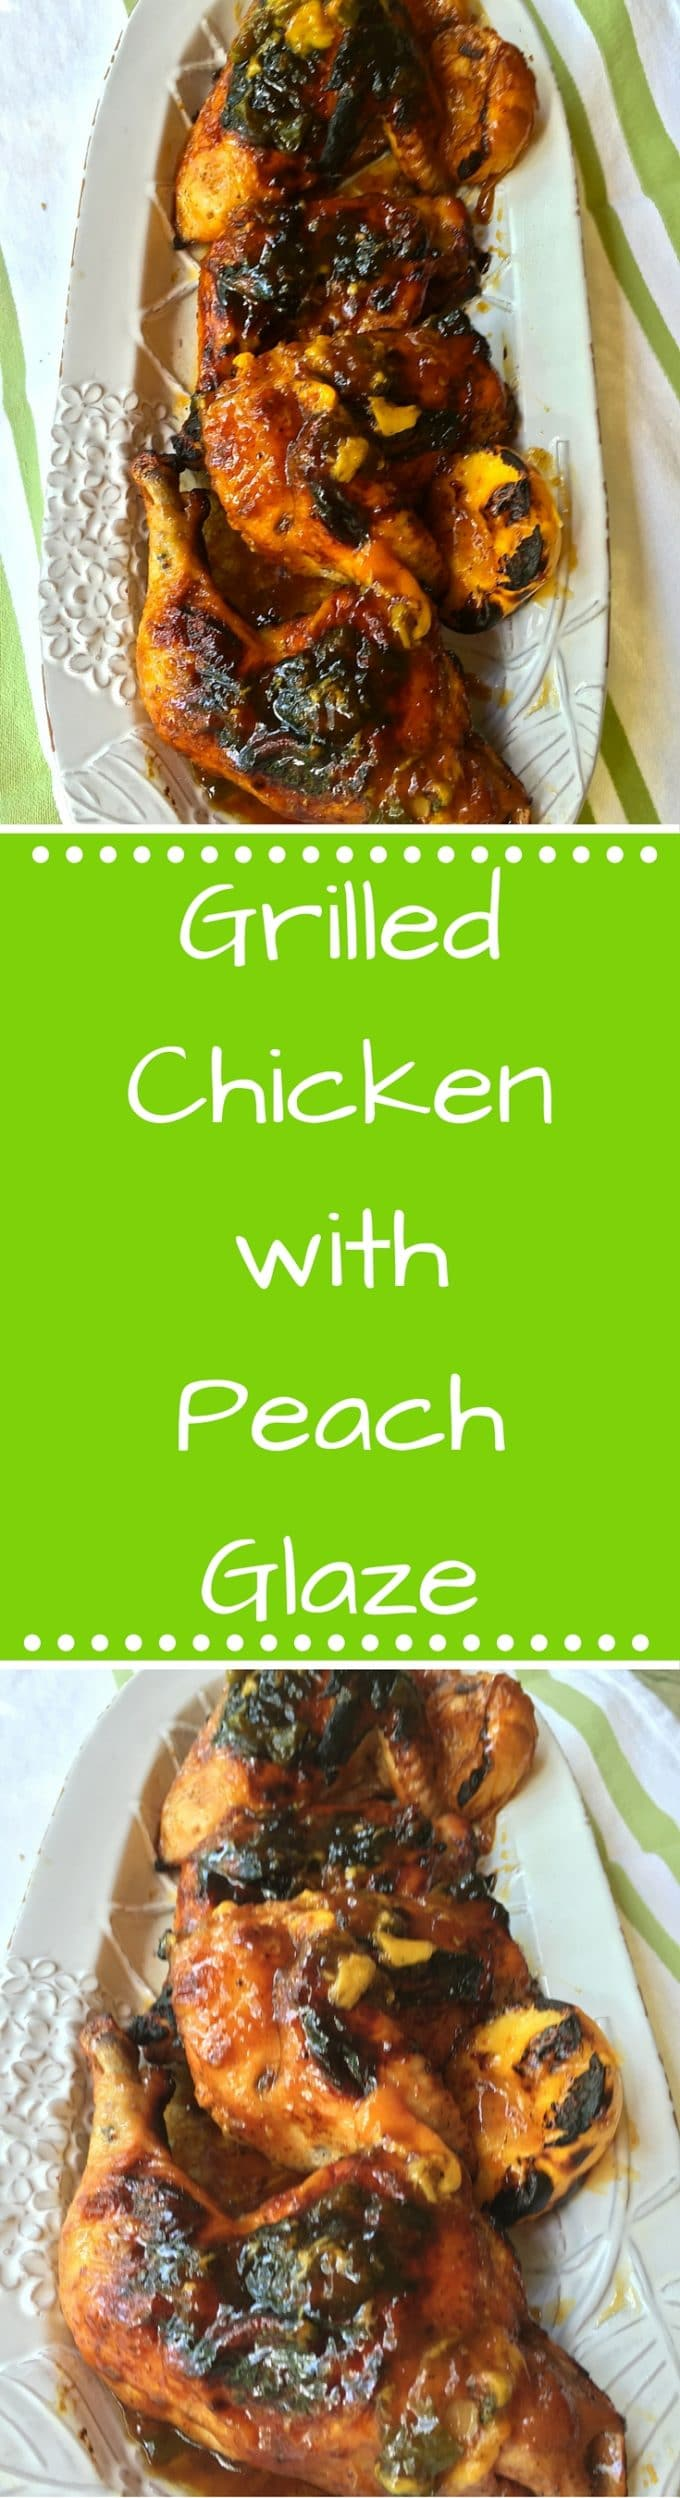 This outrageously delicious Grilled Chicken with Peach Glaze is topped with a yummy sweet, and spicy glaze made with peaches, jalapenos, and peach preserves.